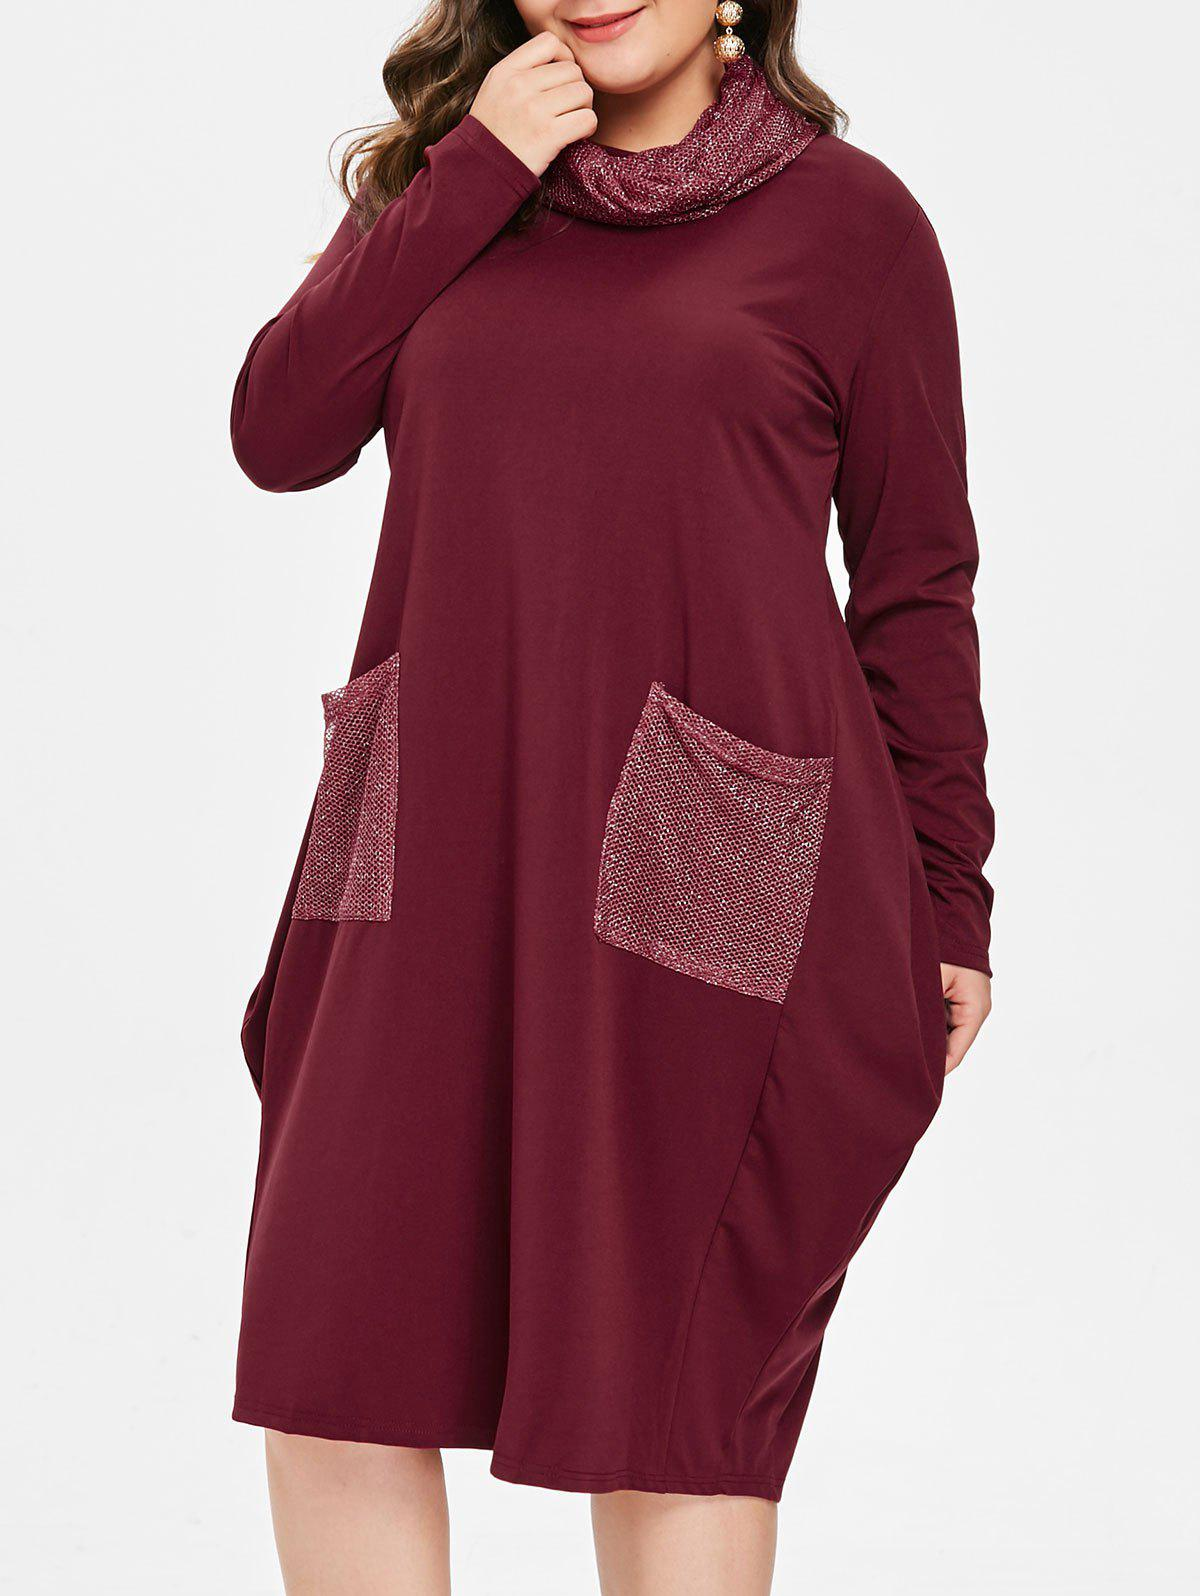 Shop Front Pockets Plus Size Knee Length Dress with Scarf